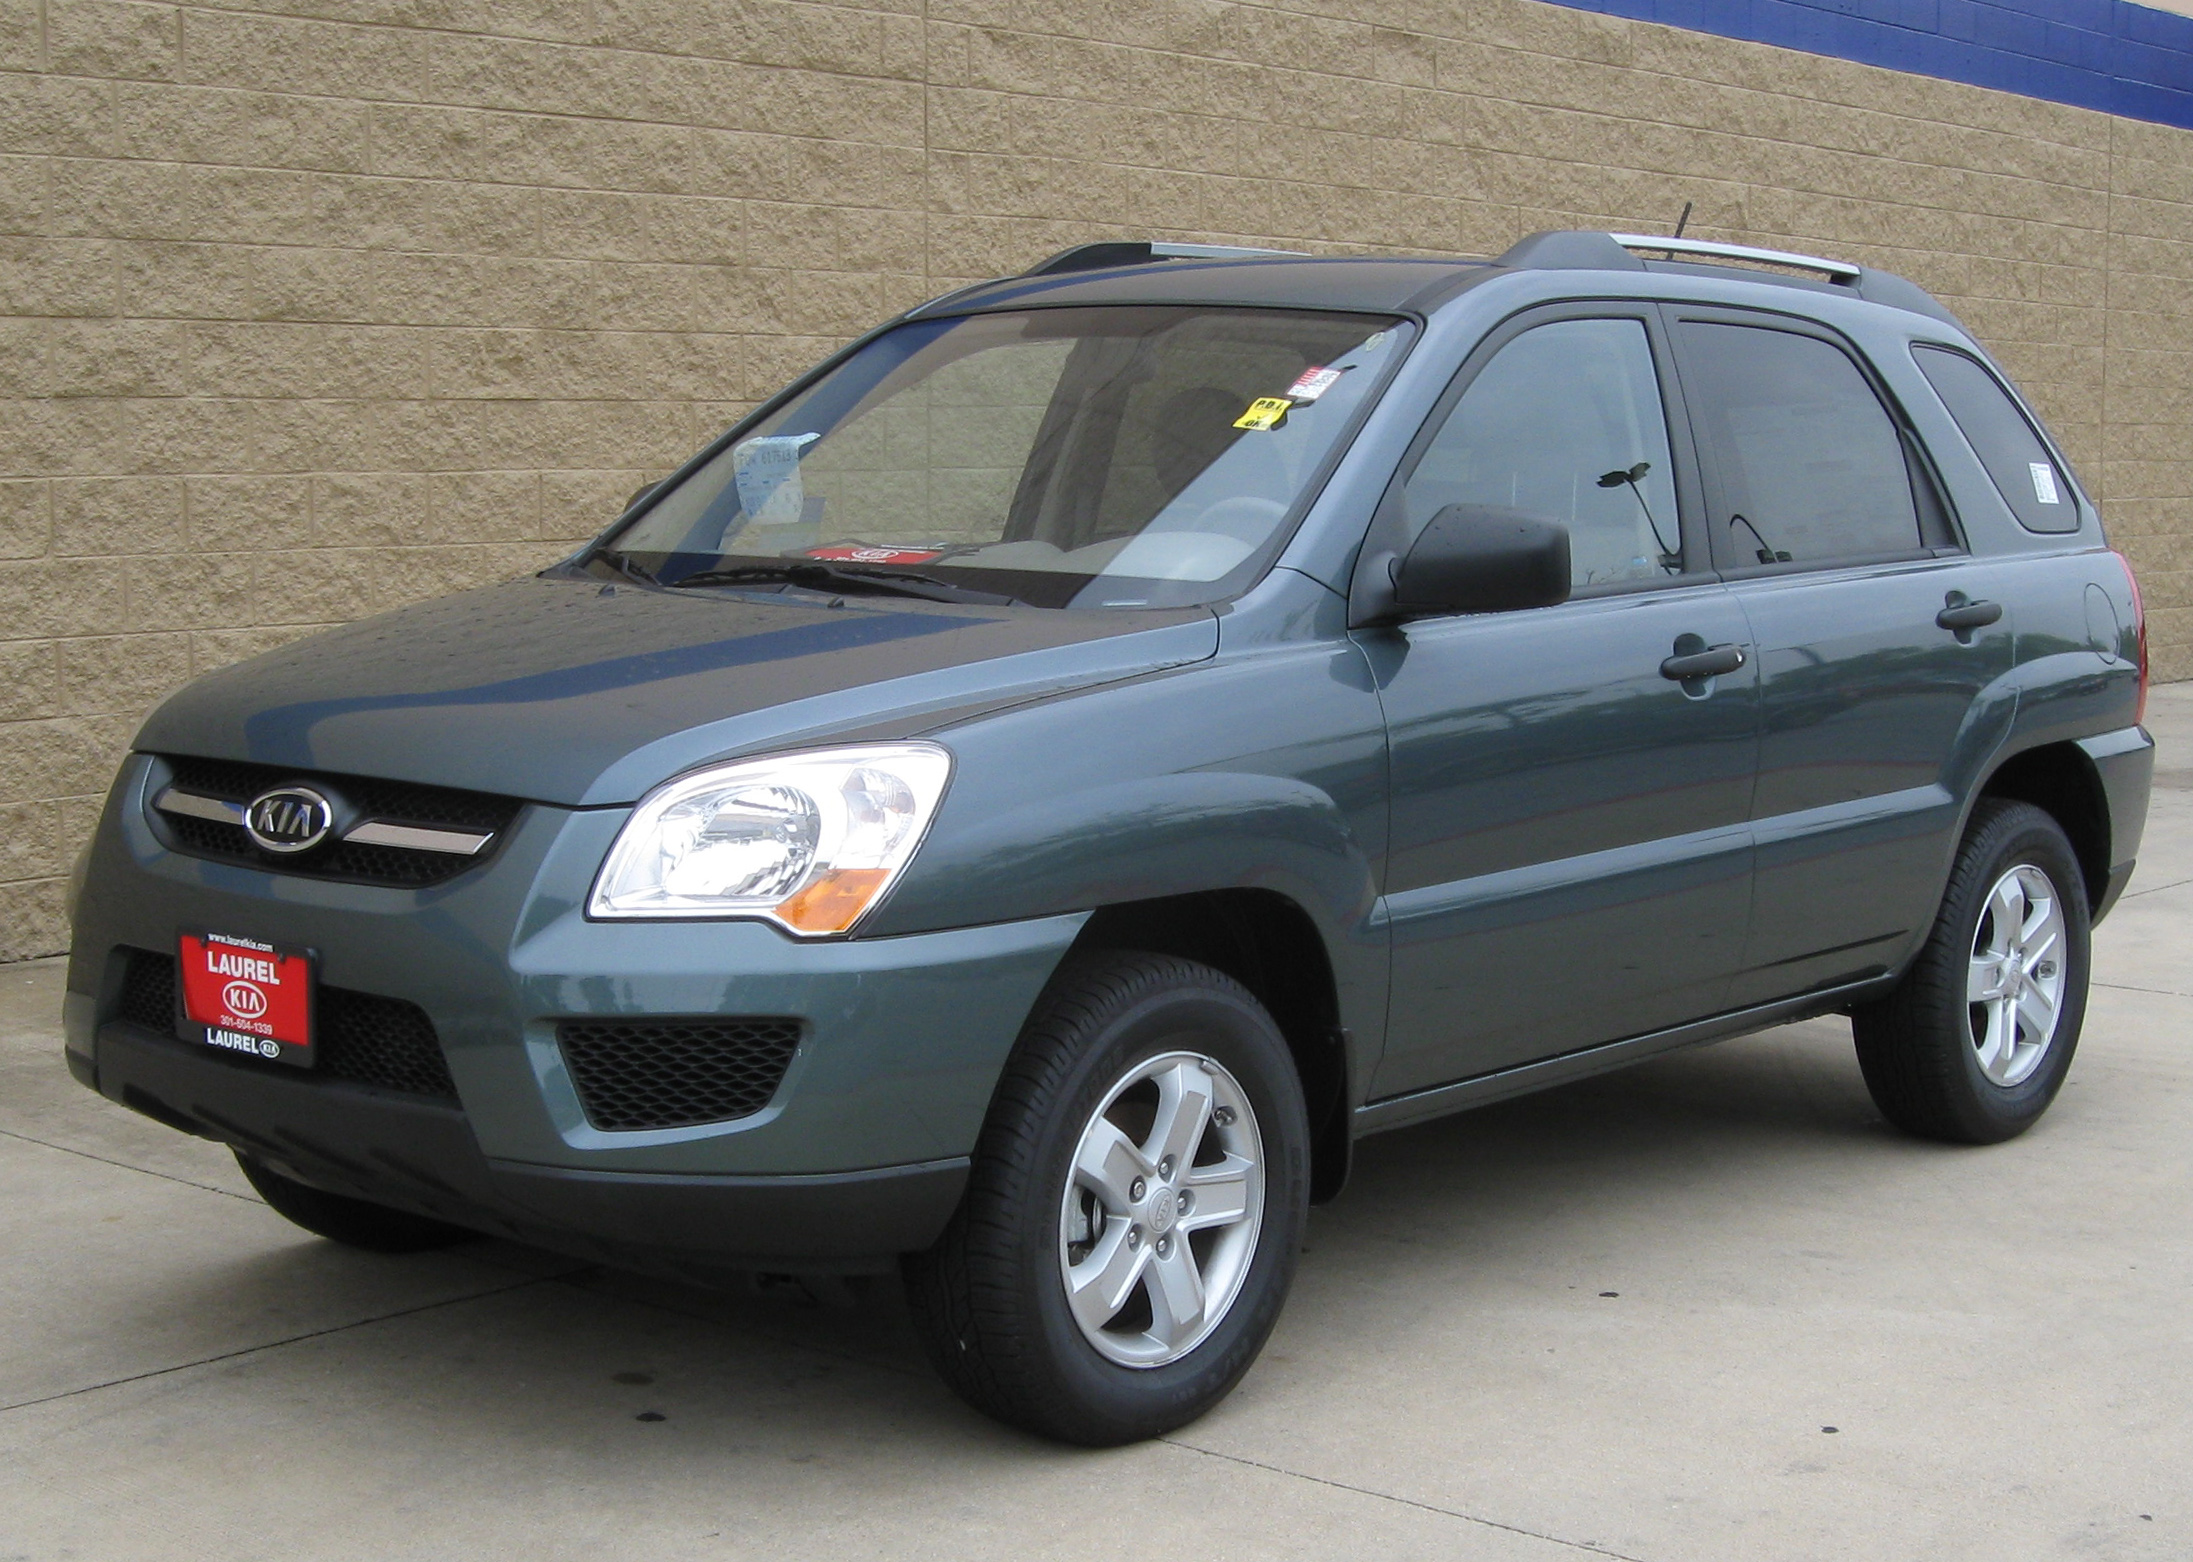 Kia Sportage Repair Autos Post